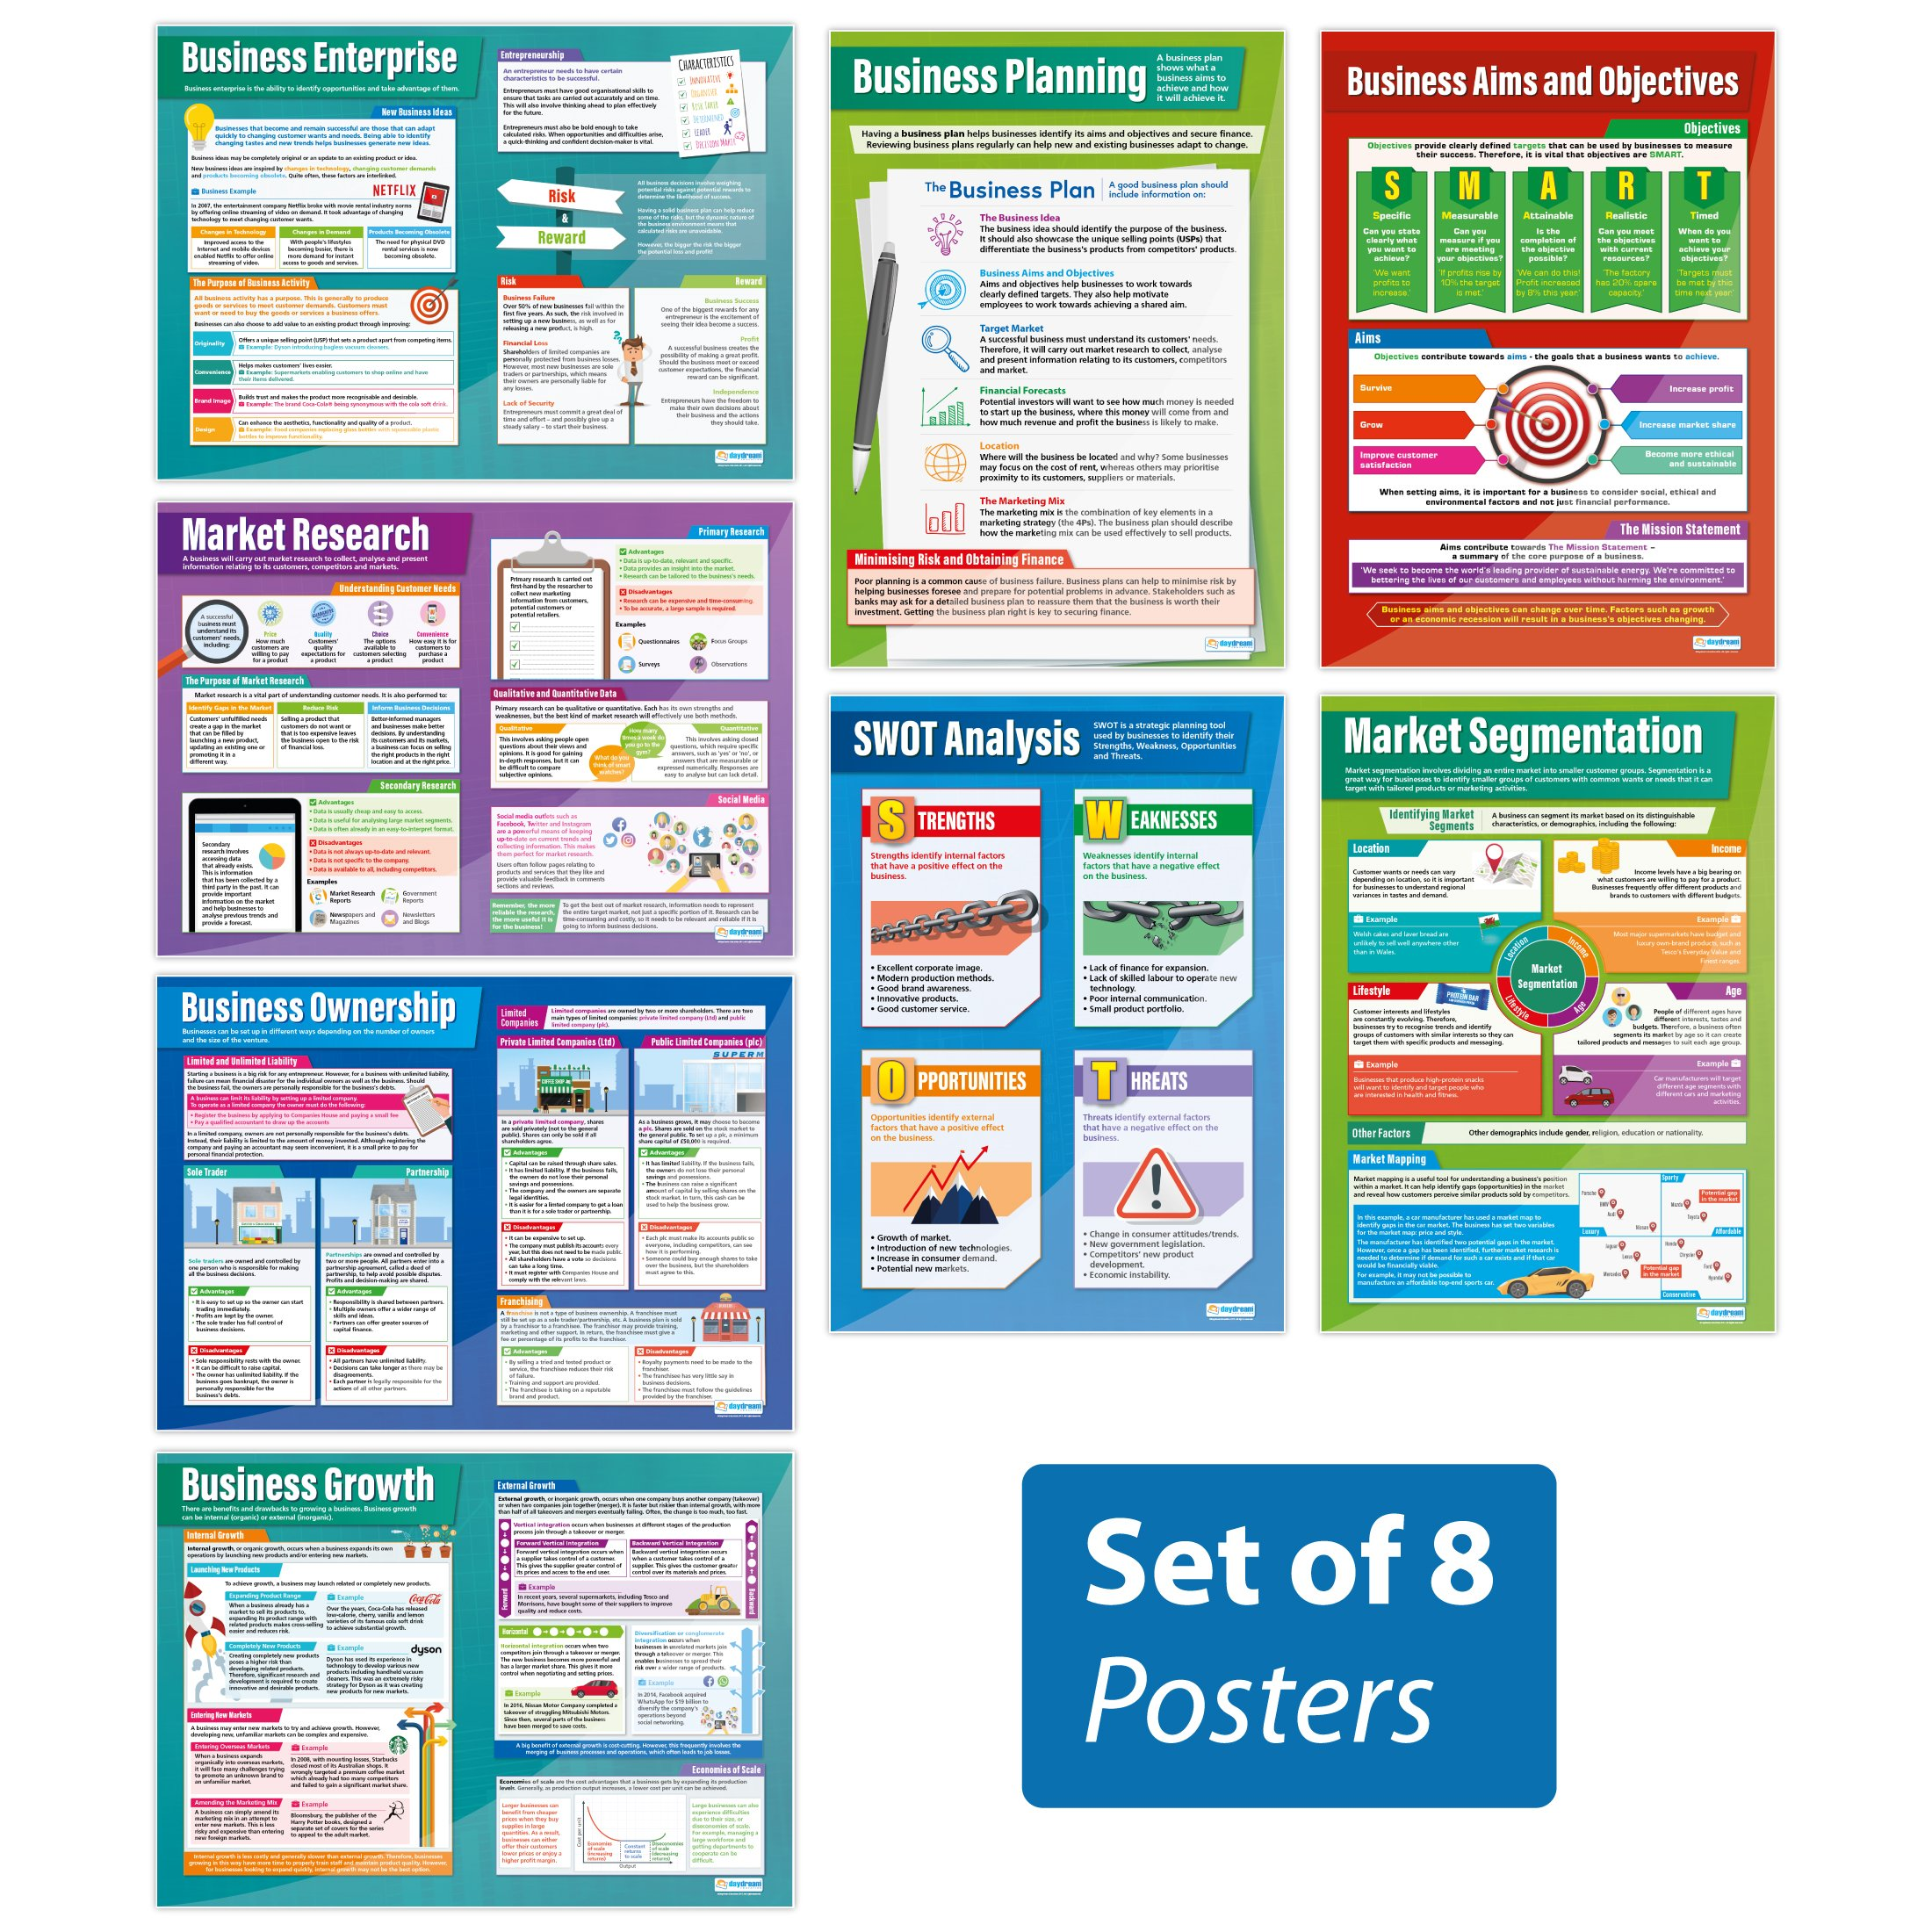 "Business Decisions Posters - Set of 8 | Business Posters | Laminated Gloss Paper Measuring 33"" x 23.5"" 